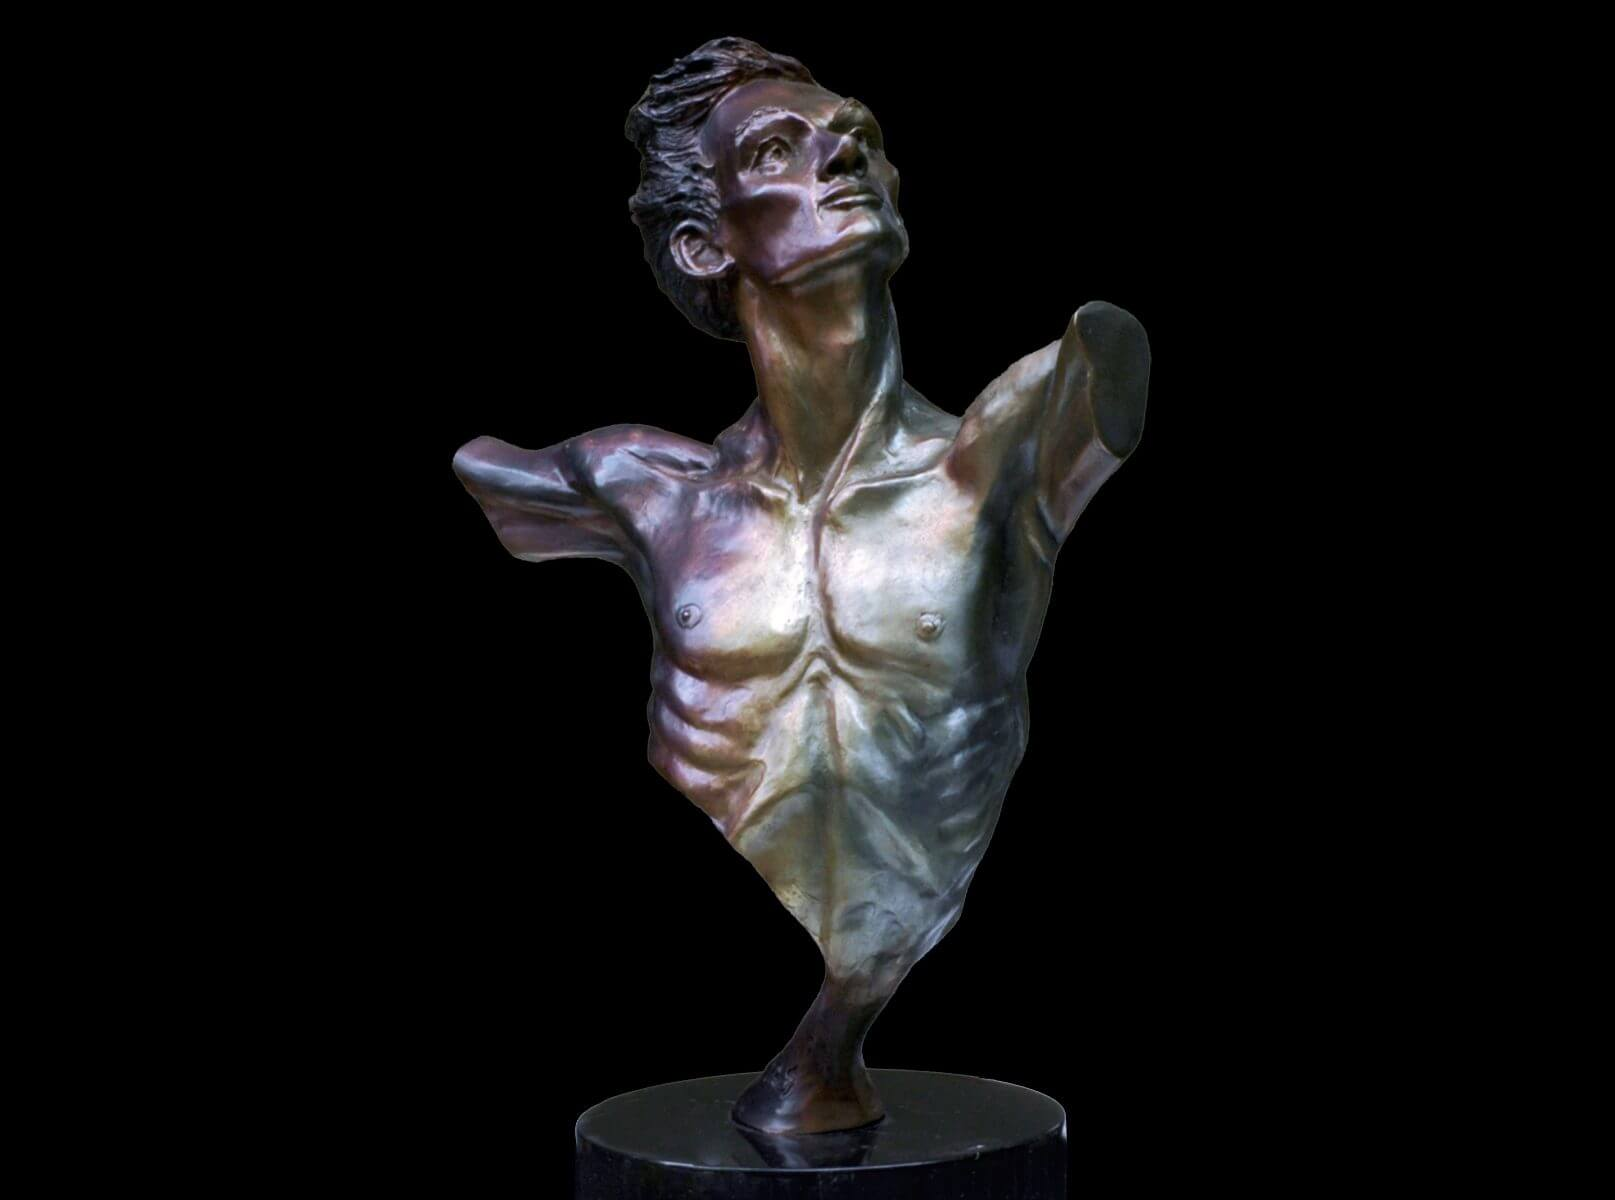 Destiny Bust a medium size bust of a male figurative dance sculpture by Andrew DeVries